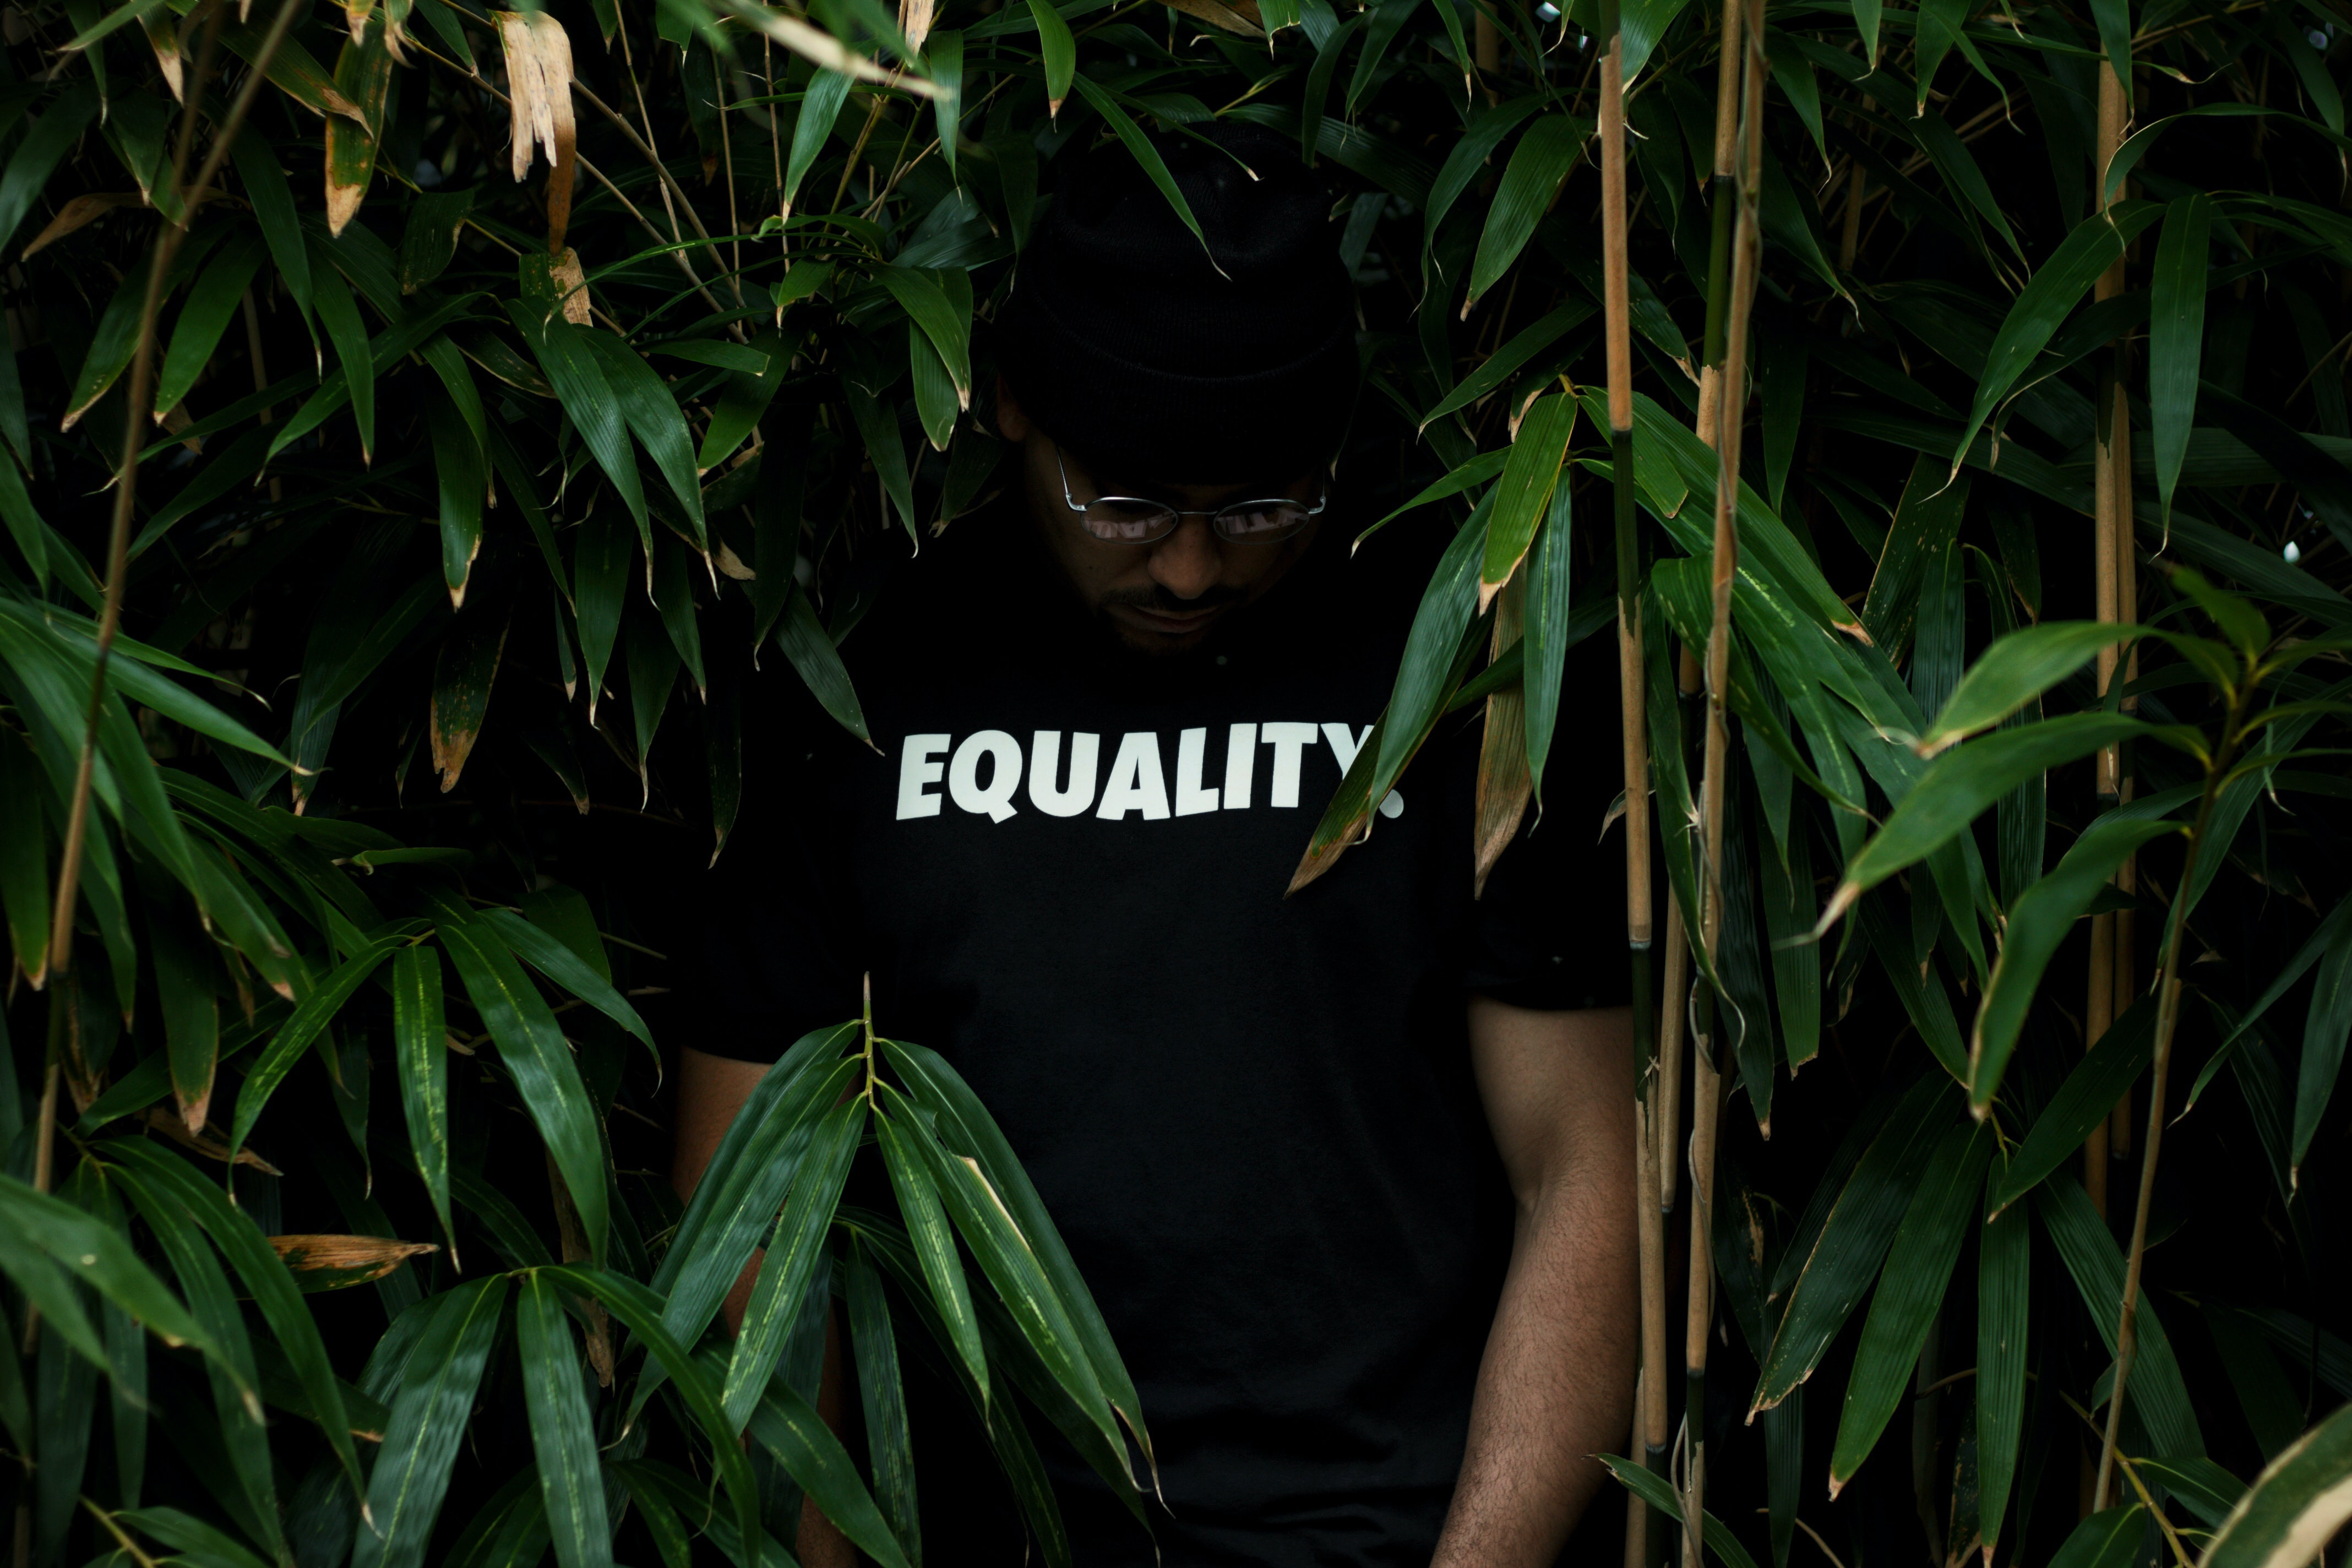 man in black crew-neck T-shirt in green leafed plant